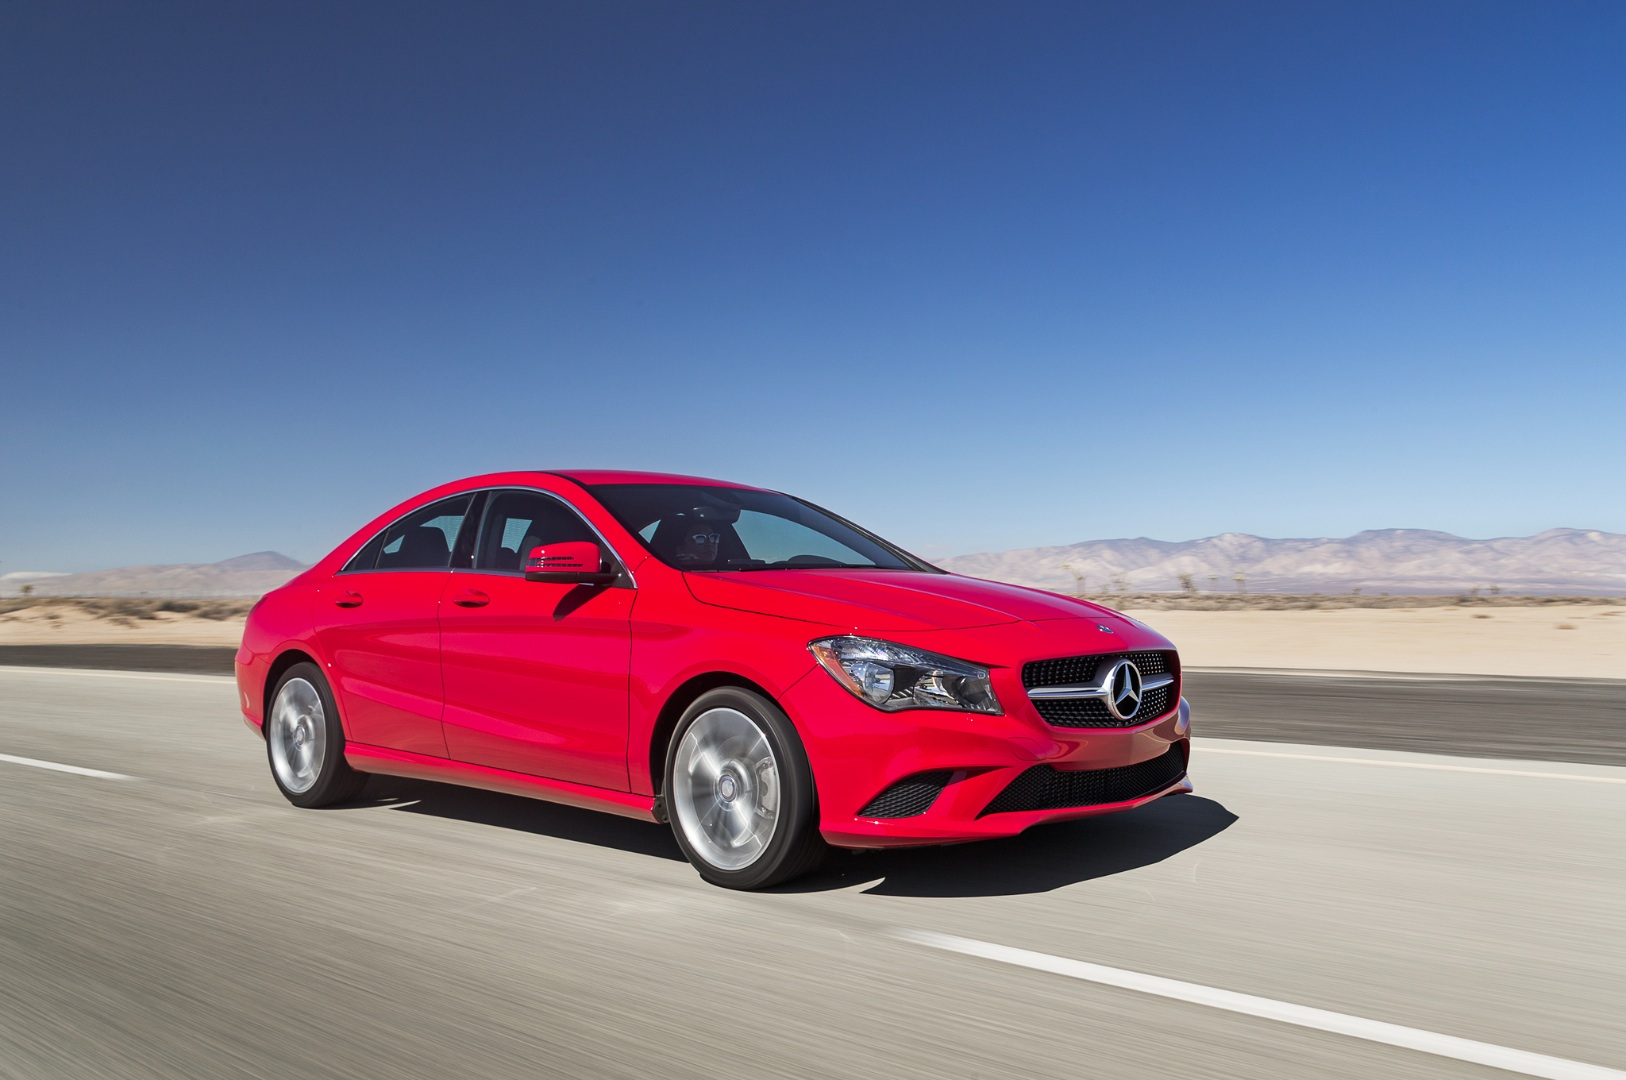 Mercedes benz cla 250 gets reviewed by motor trend for Mercedes benz 250 cla